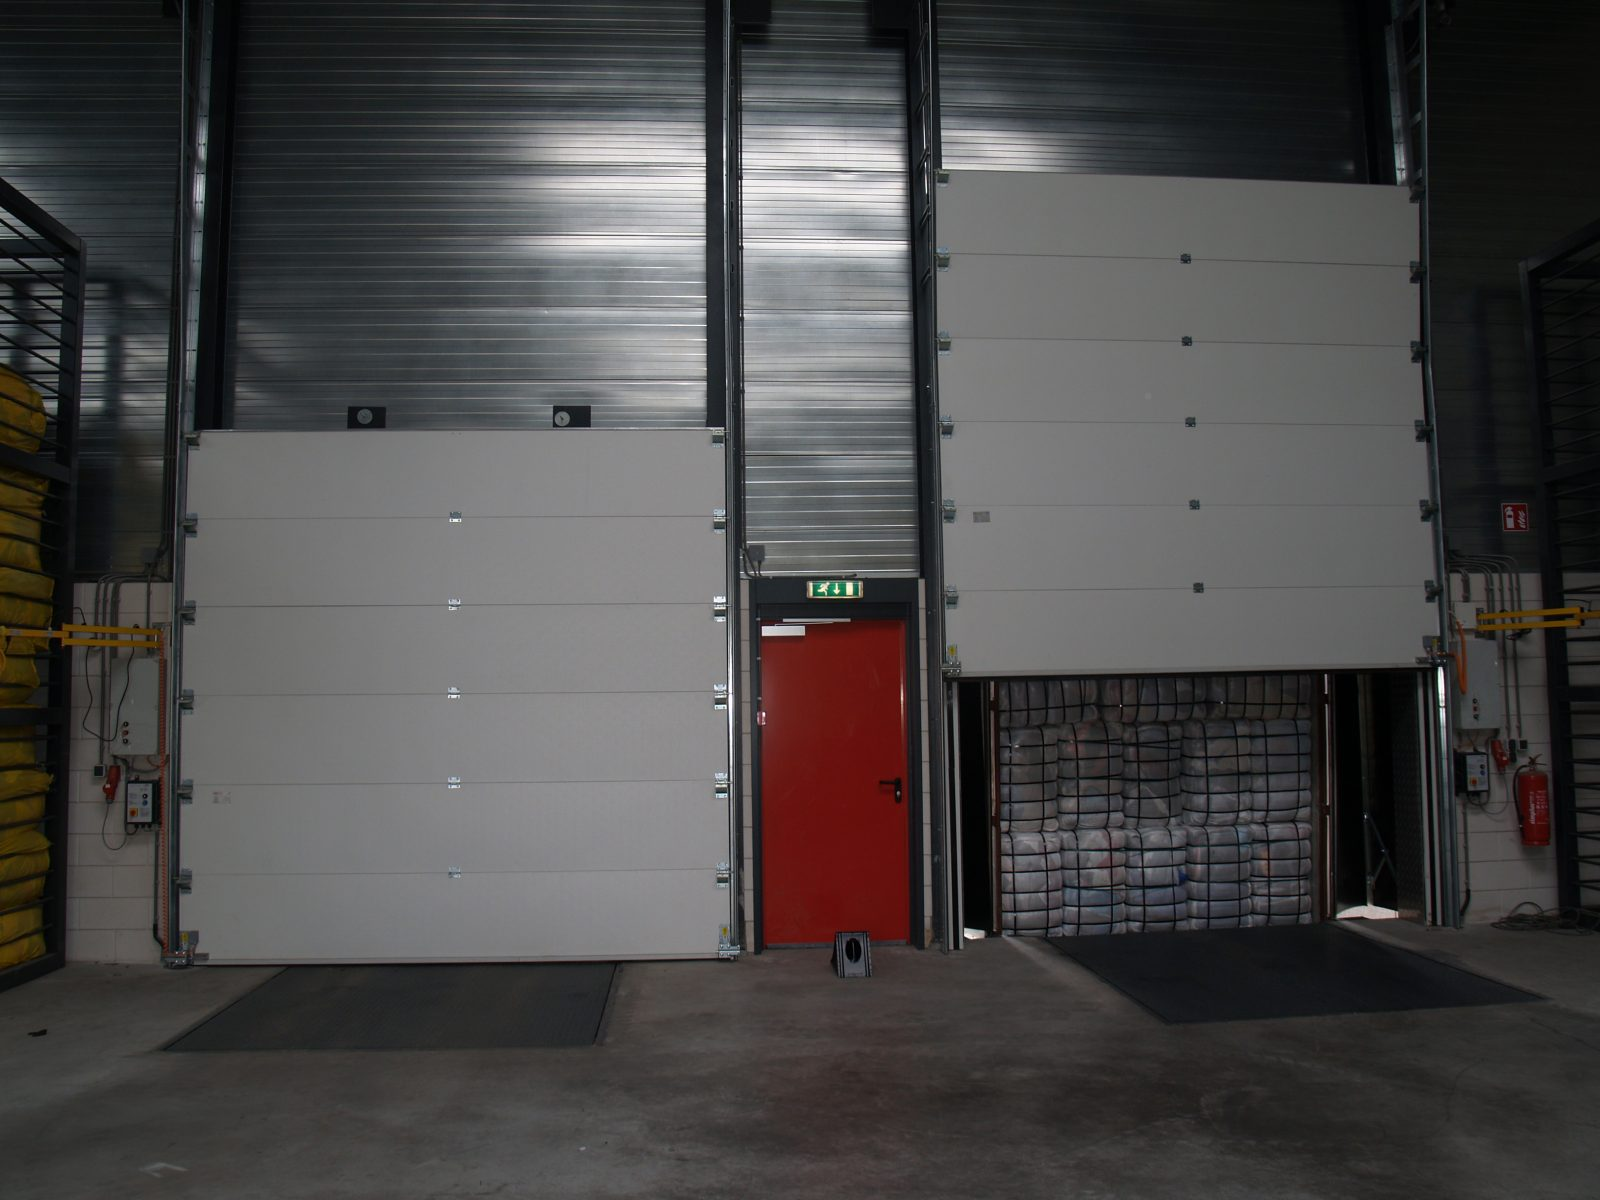 Fire-proof sectional doors - Protec Industrial Doors & Fire resistant overhead door - Gebotex - Protec Industrial Doors